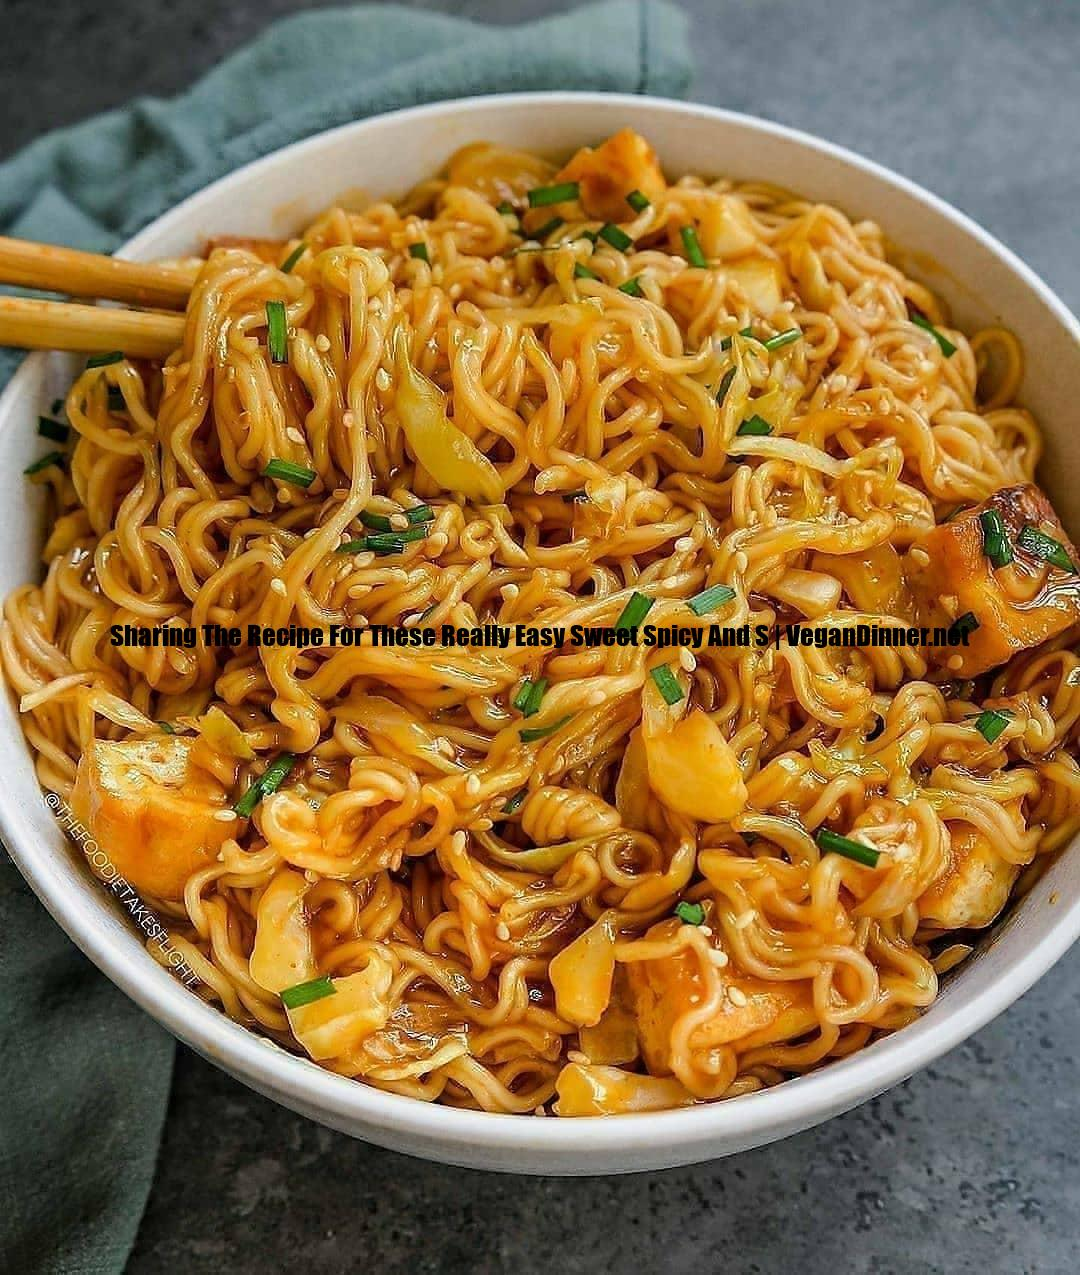 sharing the recipe for these really easy sweet spicy and s display image ebad